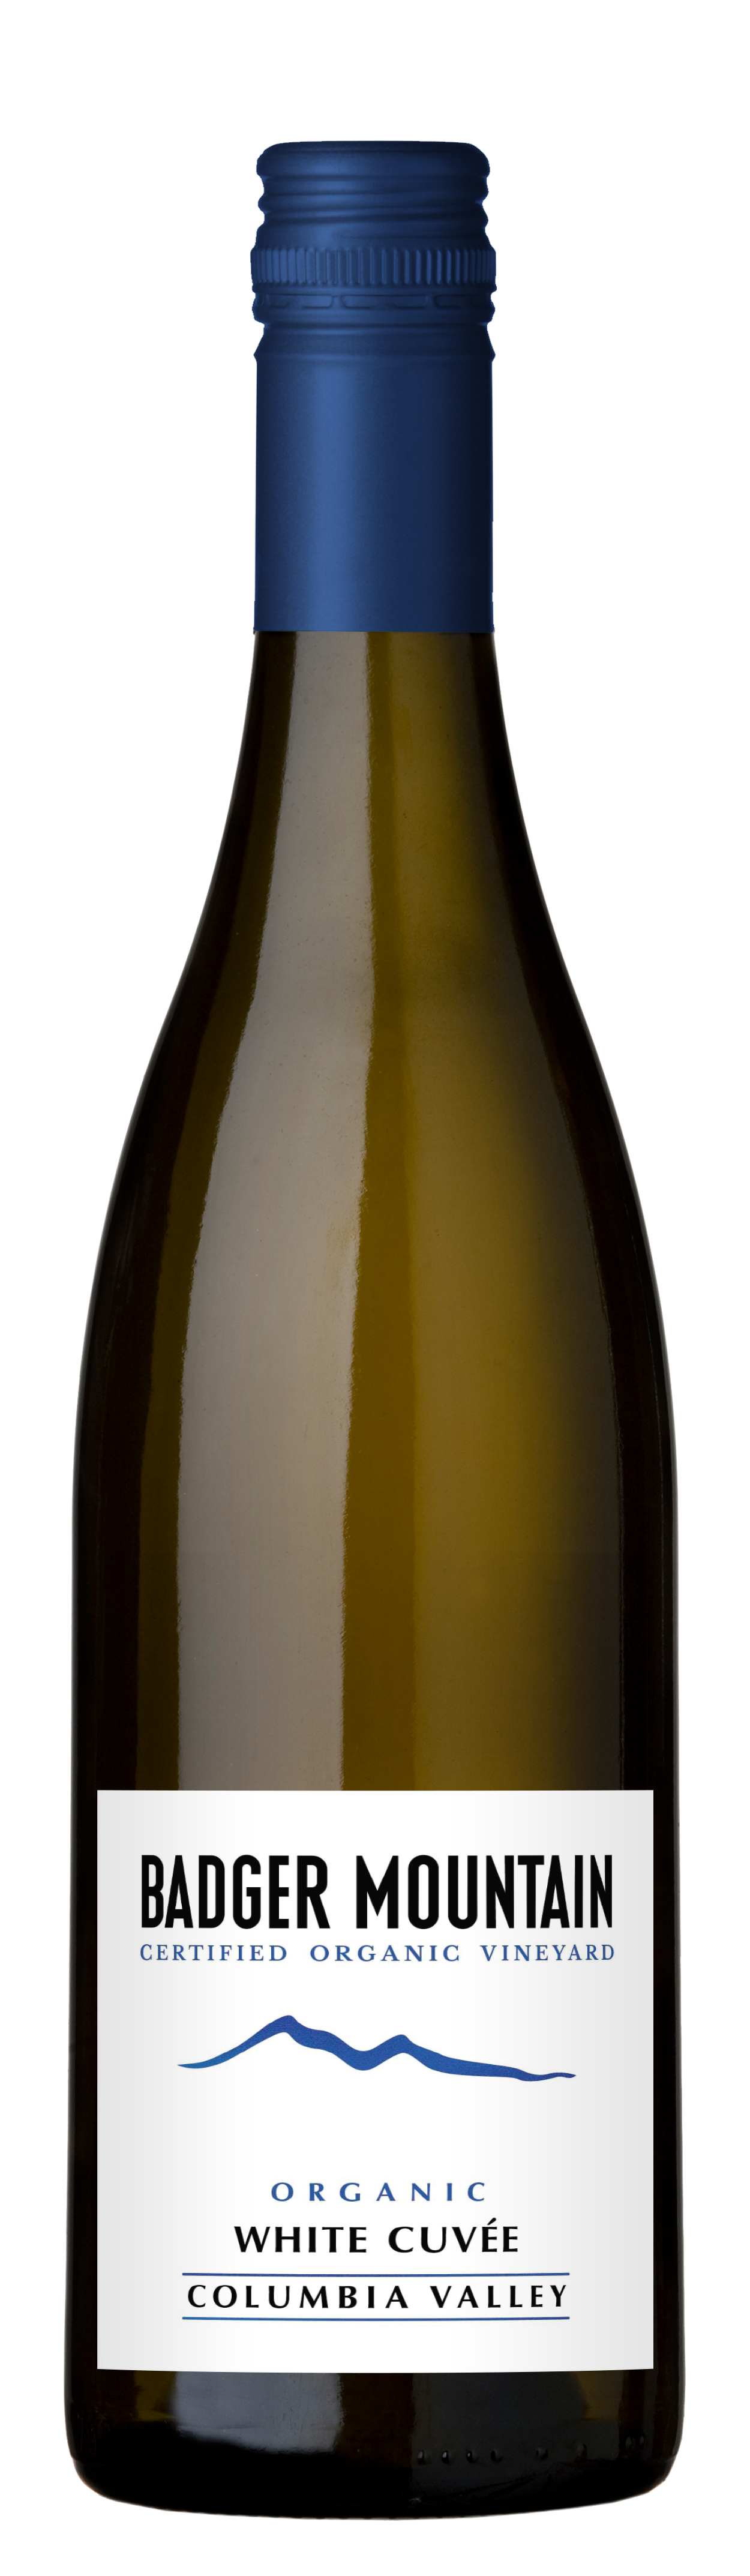 2019 Badger Mountain Organic White Cuveé (Members Only)